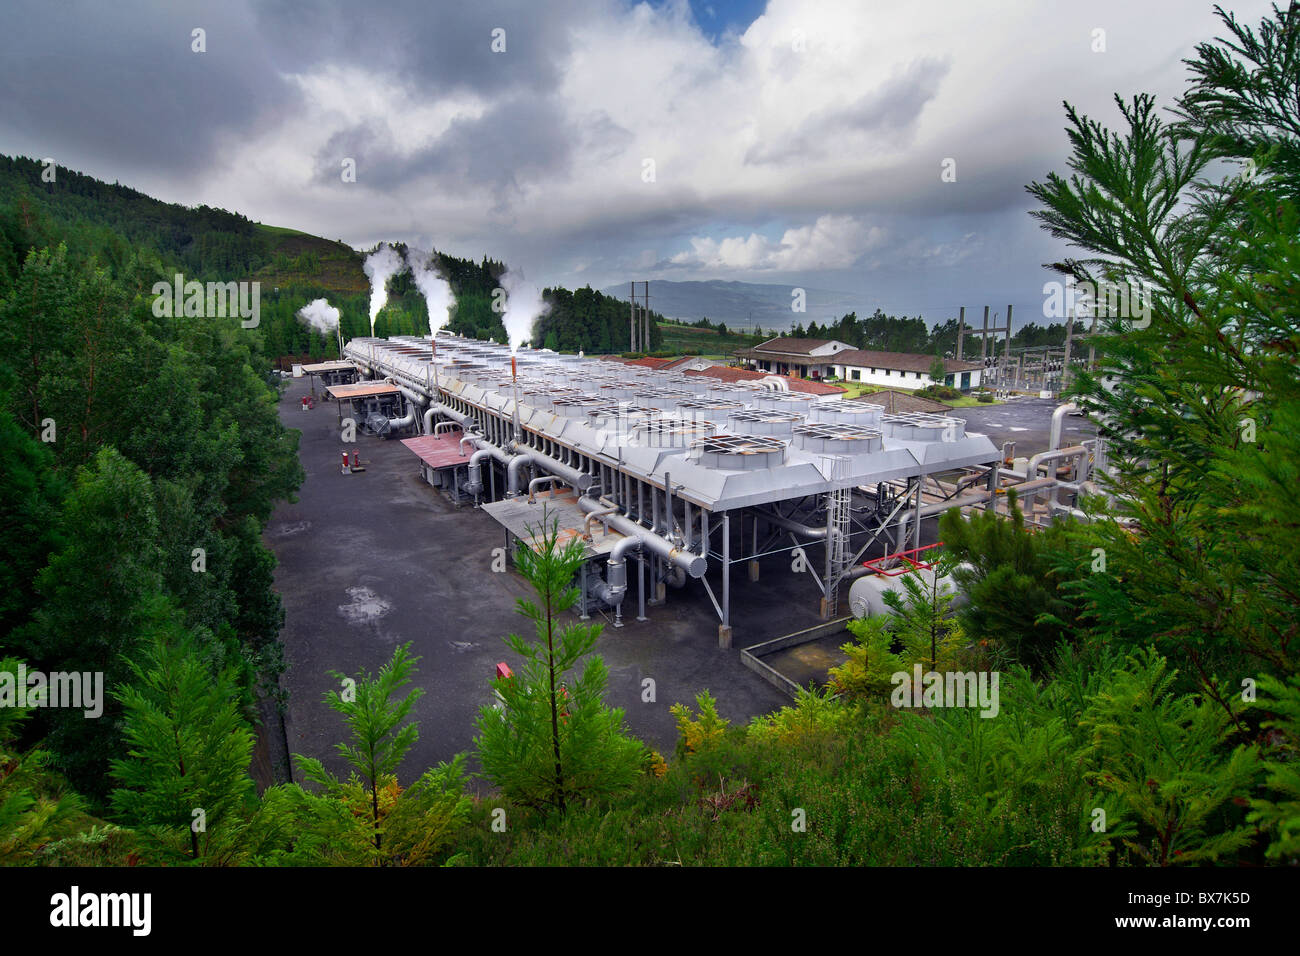 Taken in a geothermal installation in the Azores used to generate energy / electricity - Stock Image